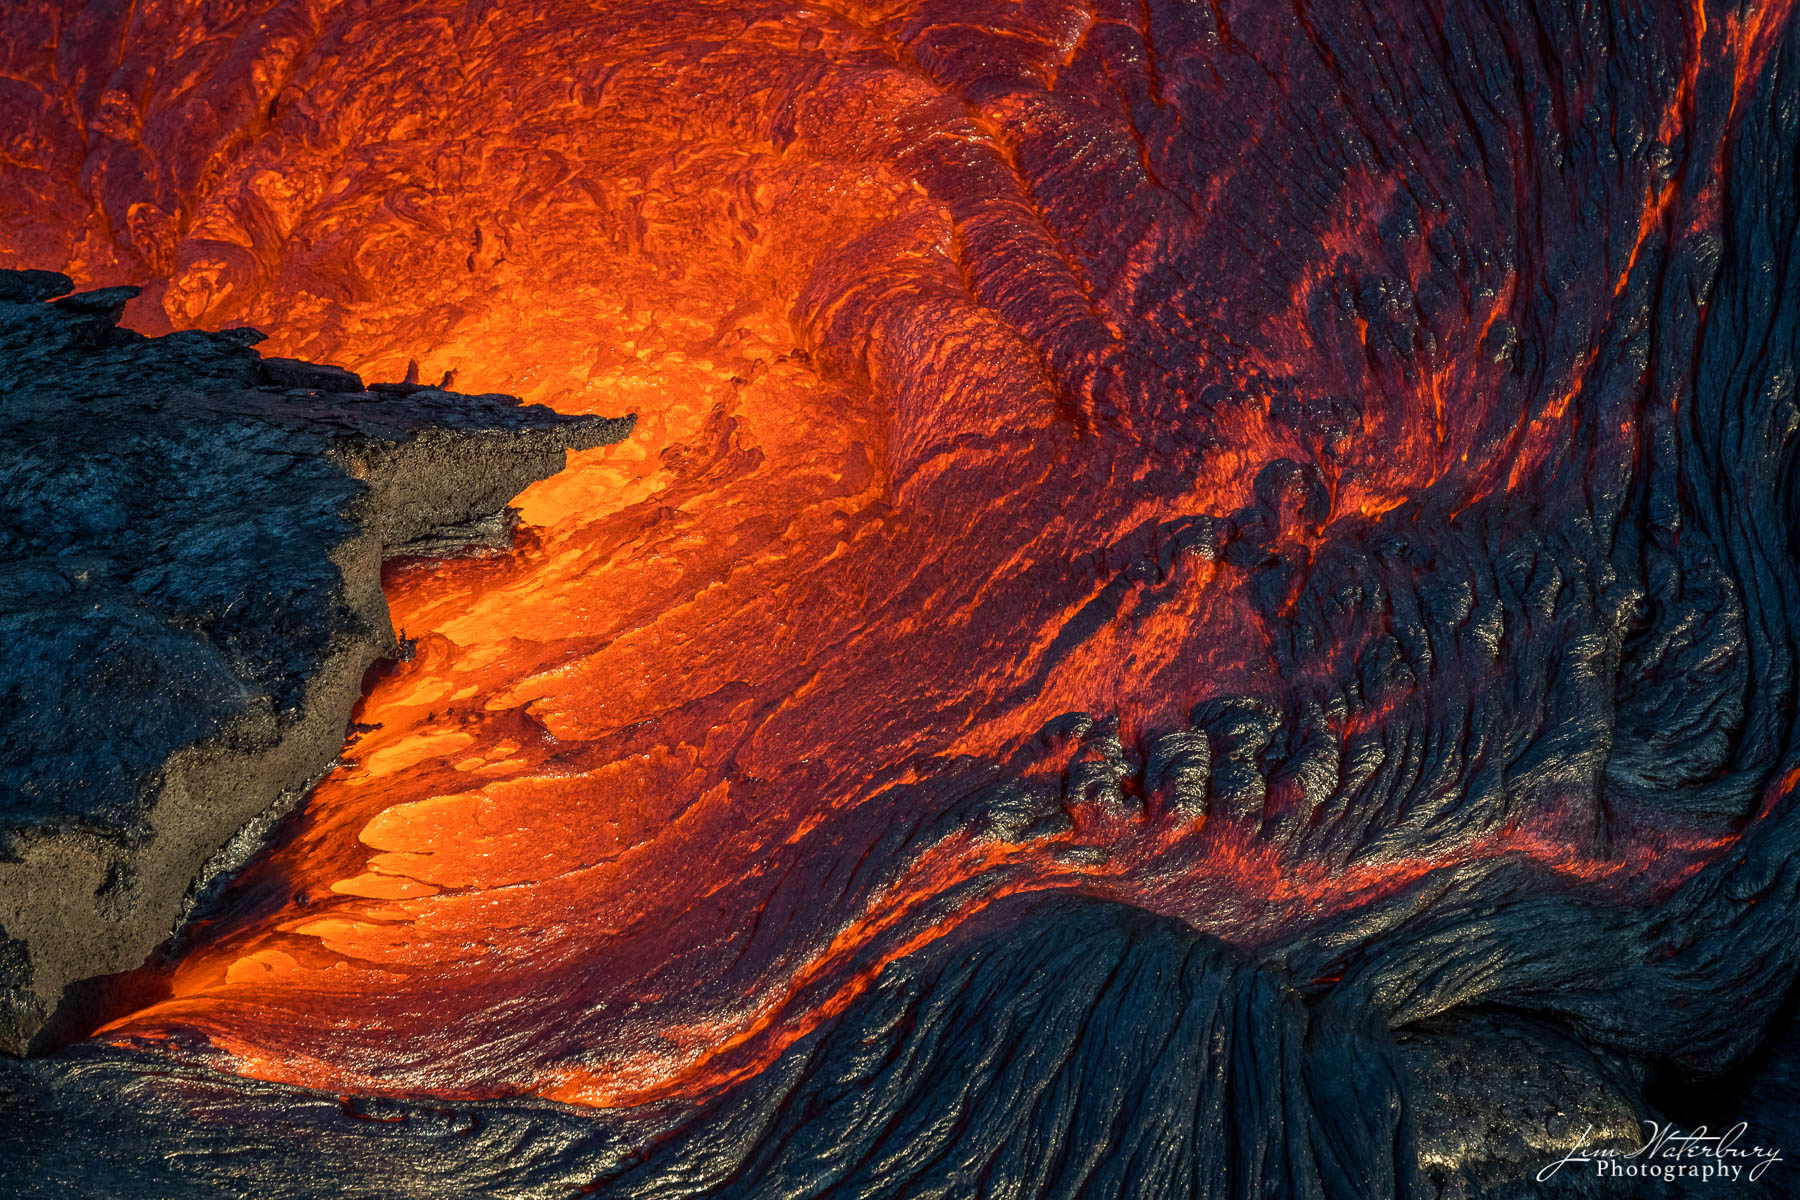 Abstract of lava flowing at the Kilauea volcano in Hawaii's Volcanoes National Park; Big Island, Hawaii, as photographed from...